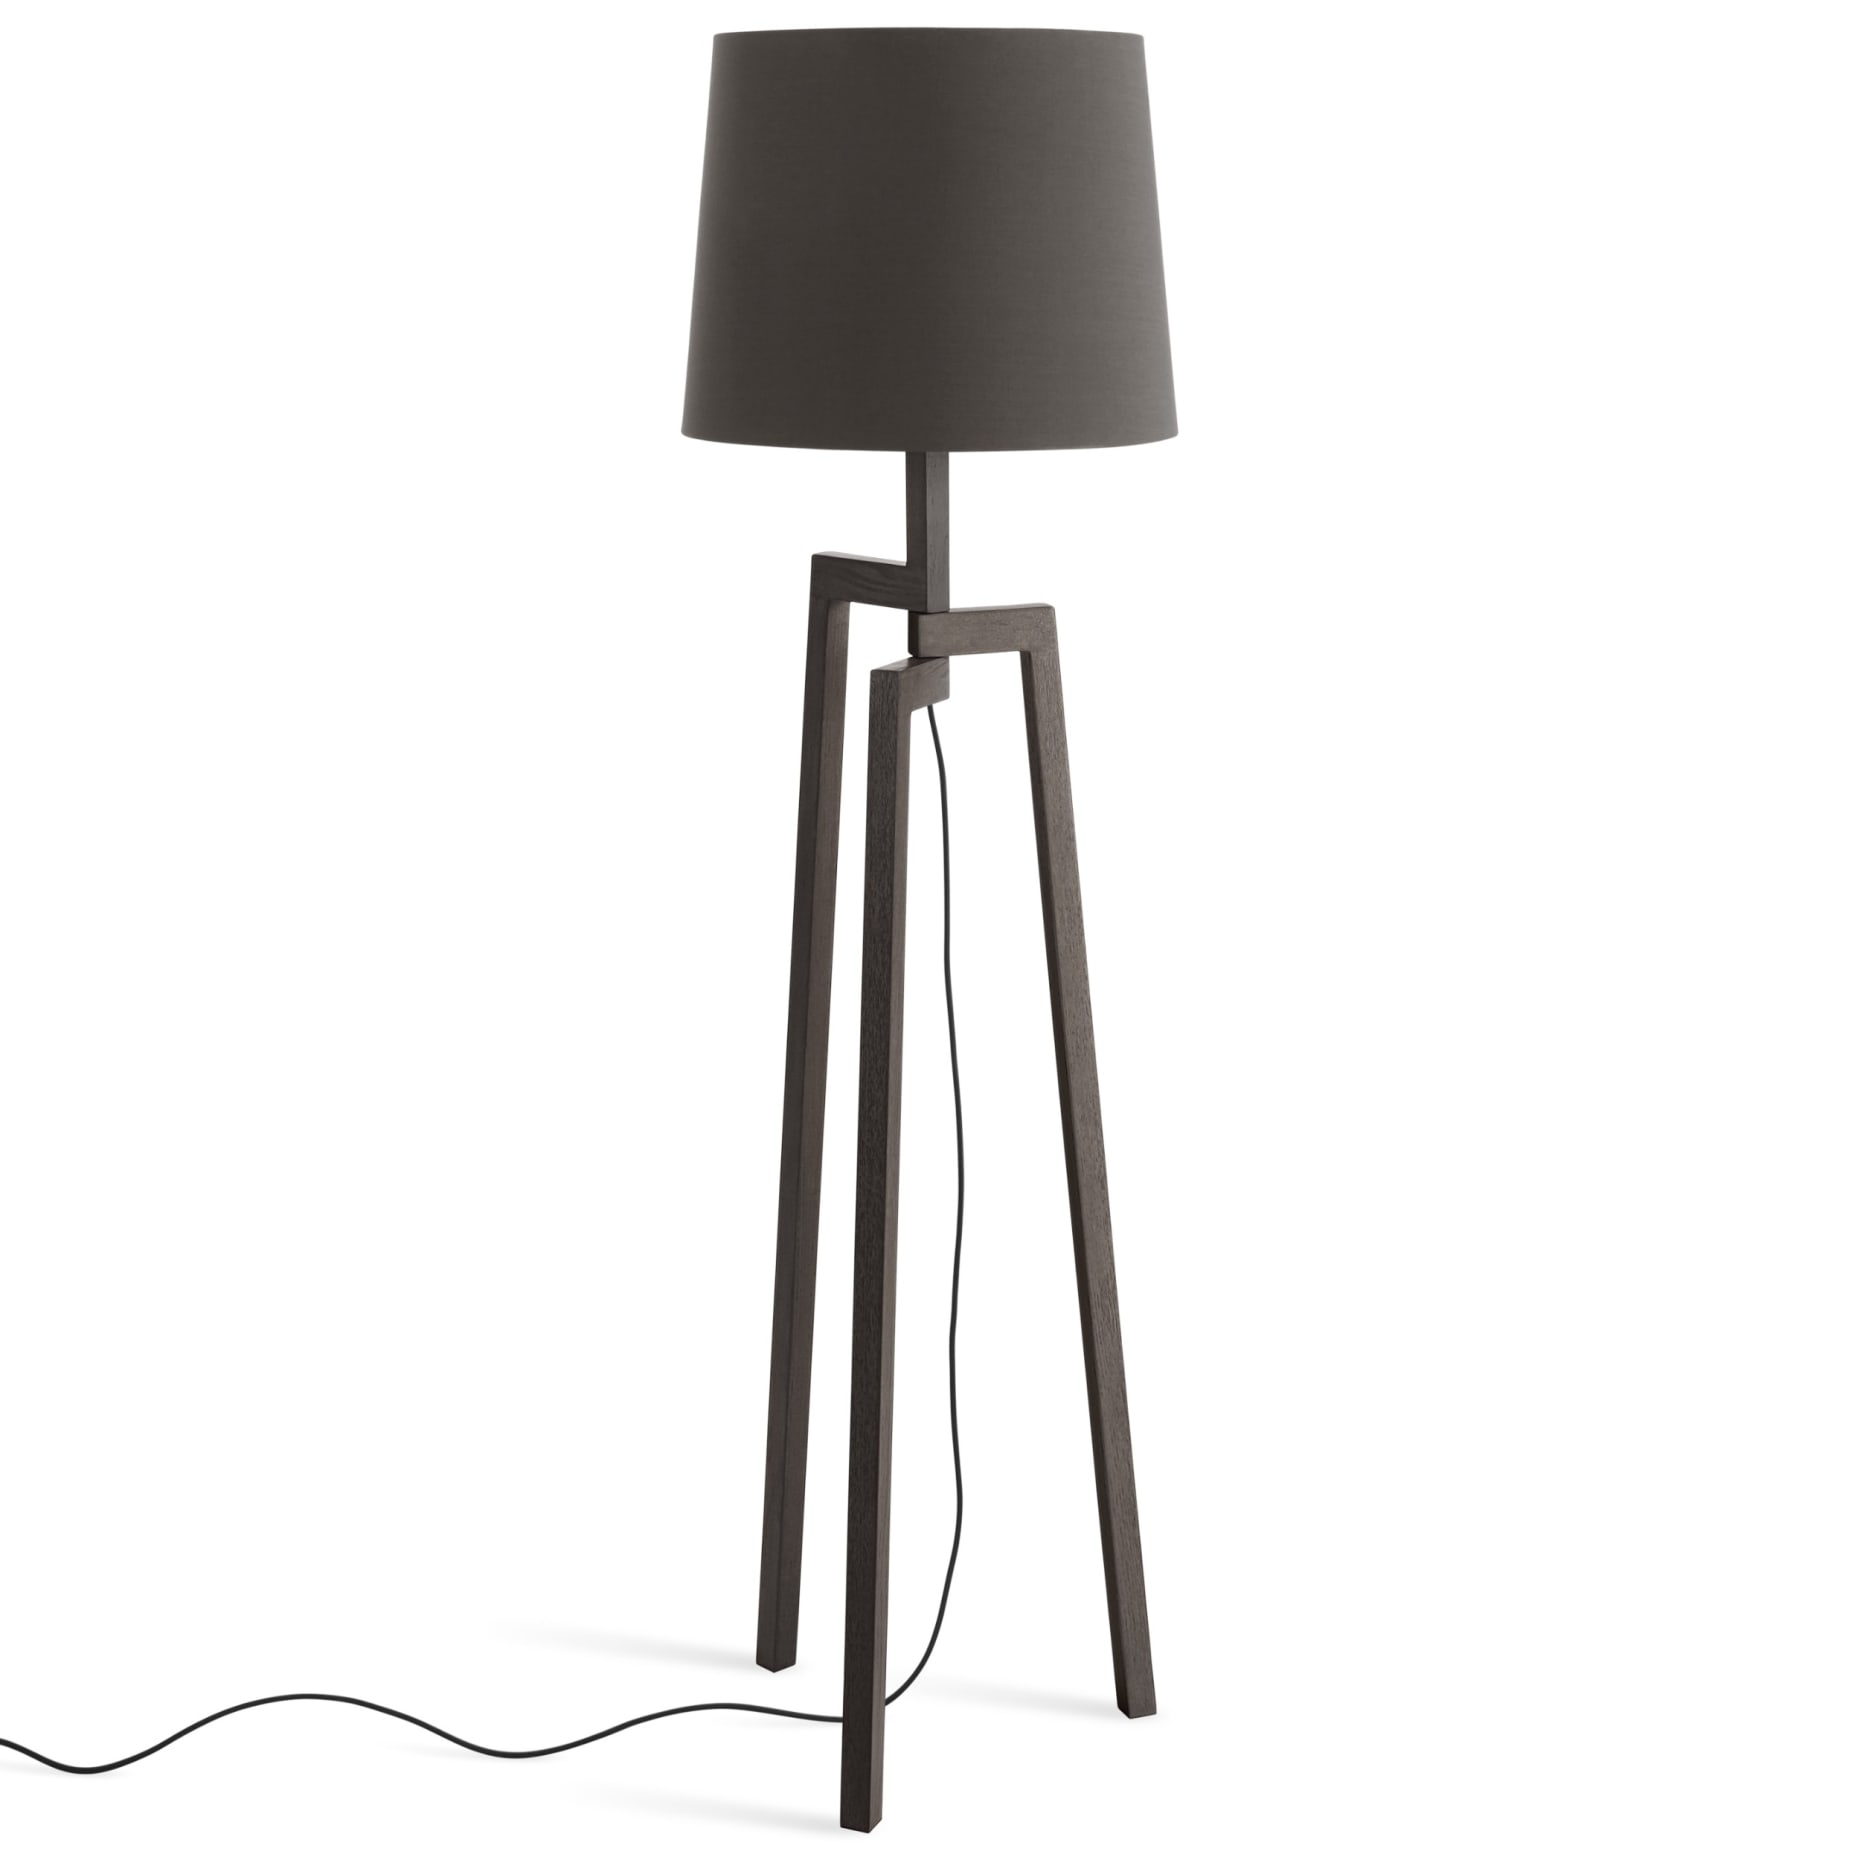 st1 lgstlt sk stilt floor lamp smoke charcoal 1